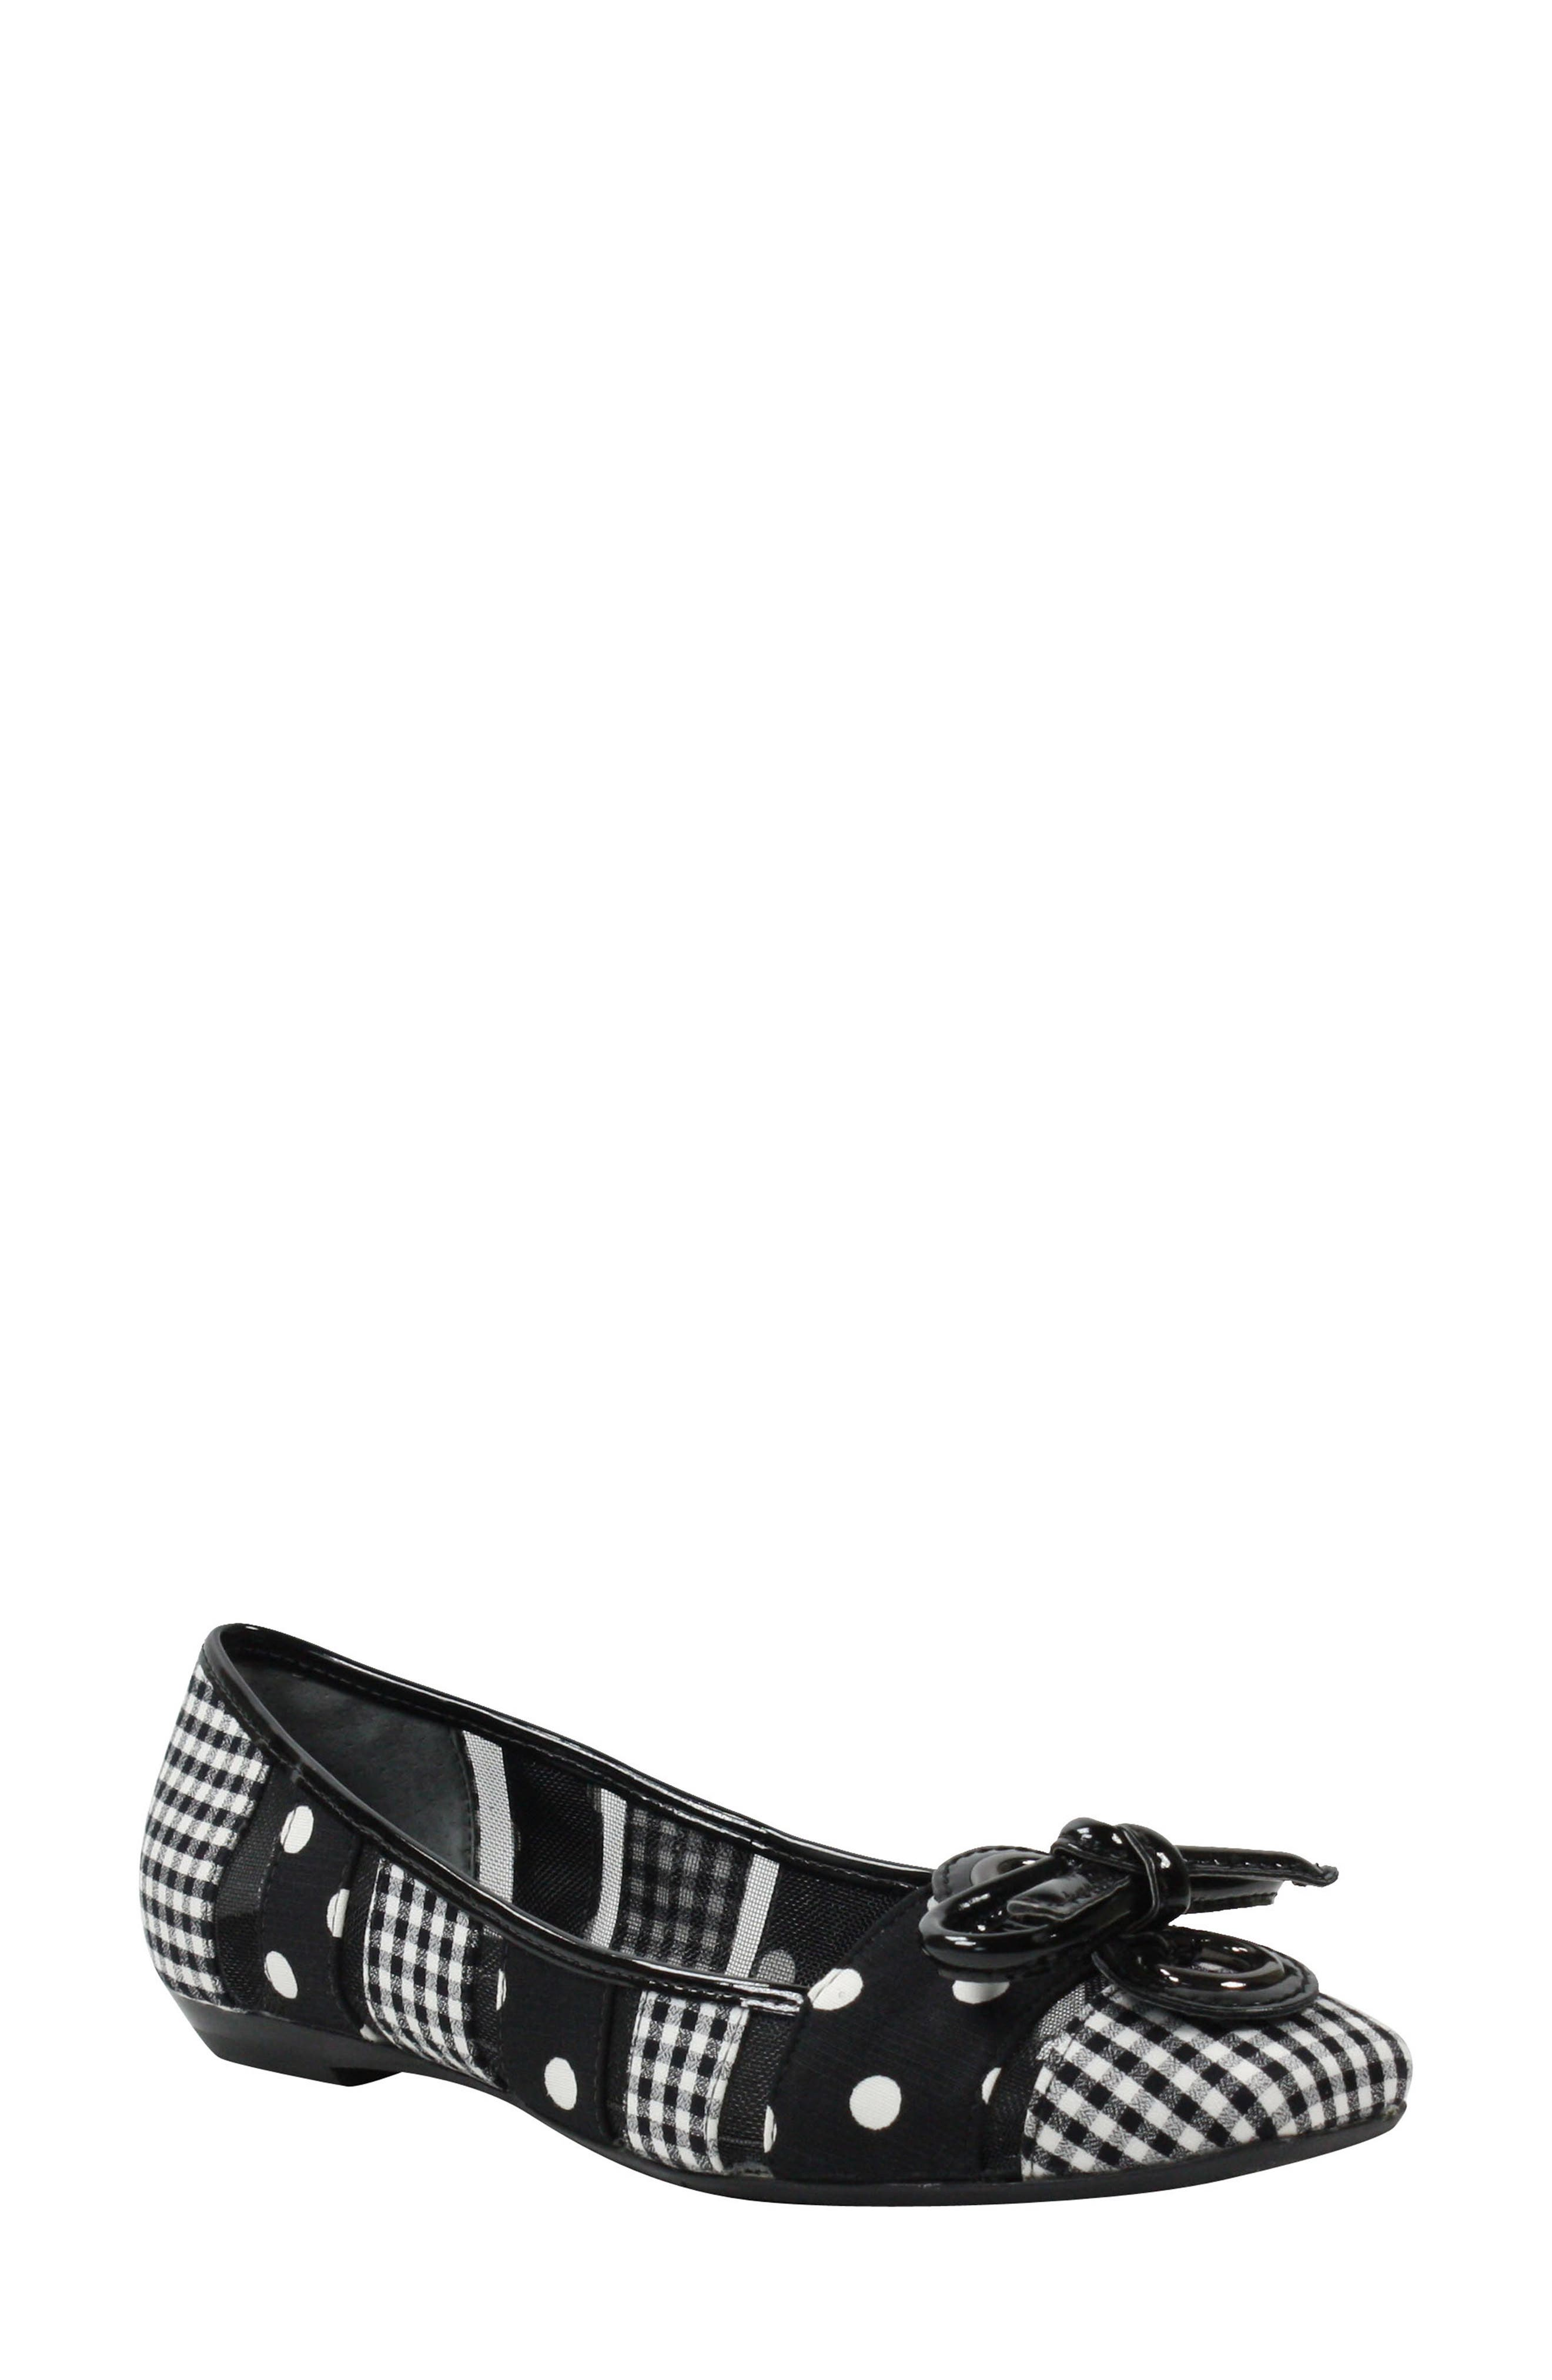 J. RENEÉ 'Edie' Skimmer Flat, Main, color, BLACK/ WHITE PRINT FABRIC